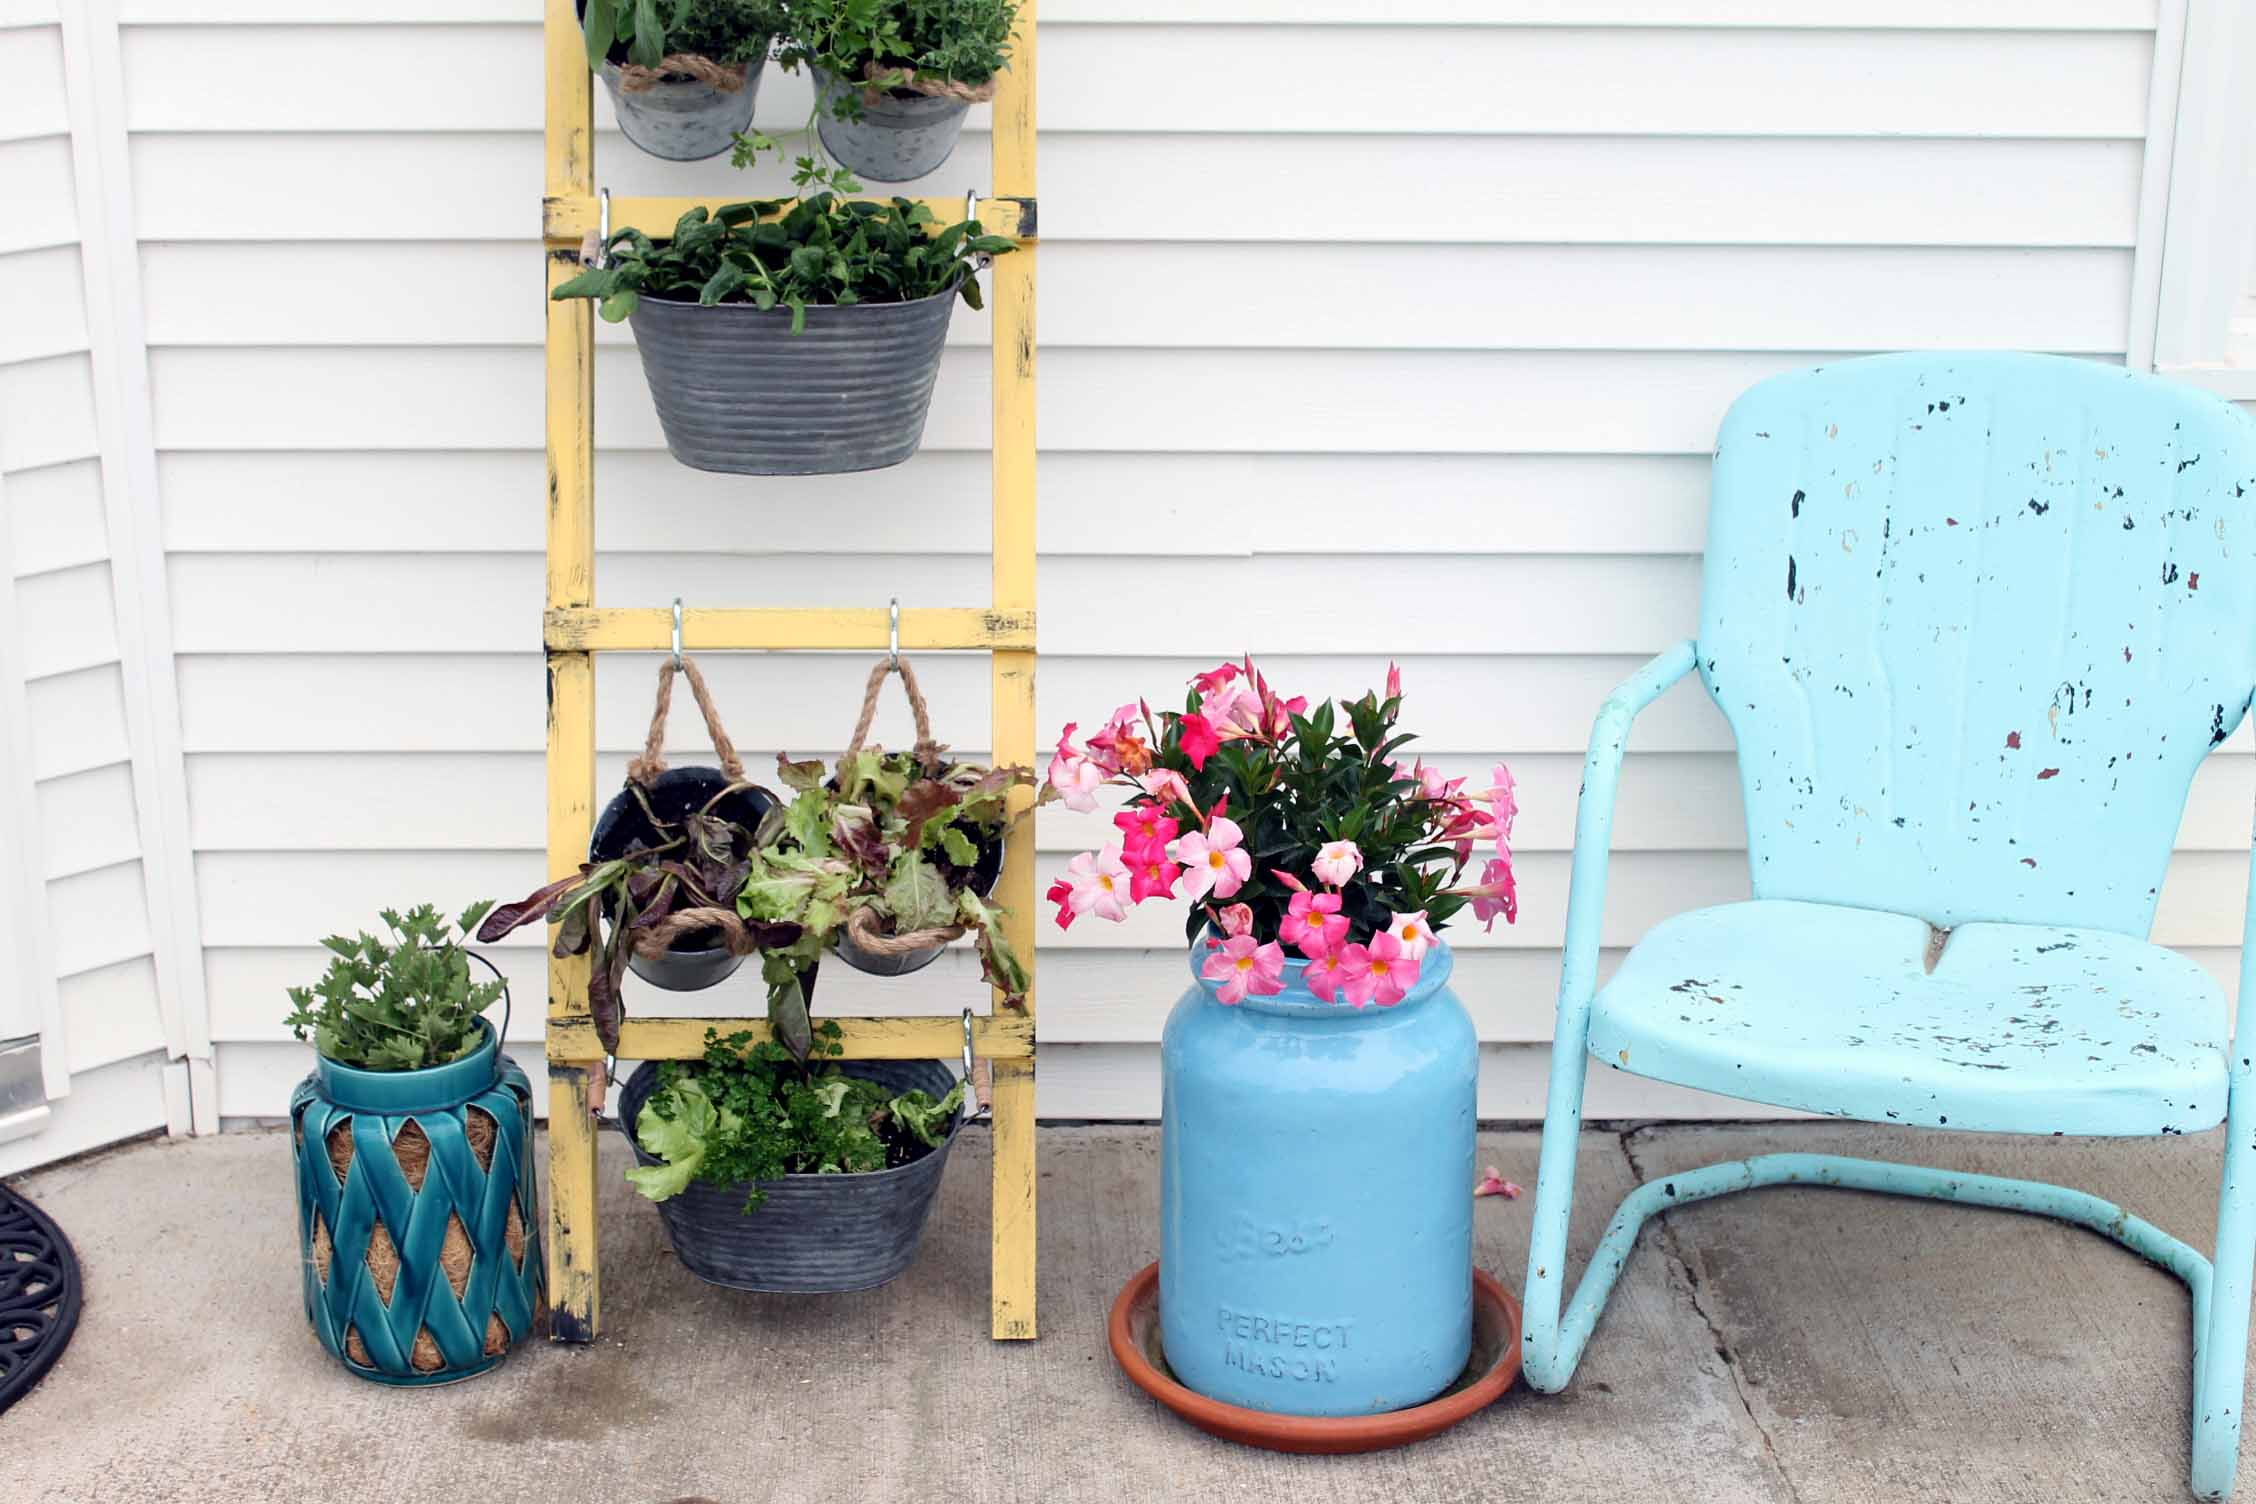 Add this DIY vertical garden to your porch this spring and summer! The perfect way to go vegetables and herbs in a small space!